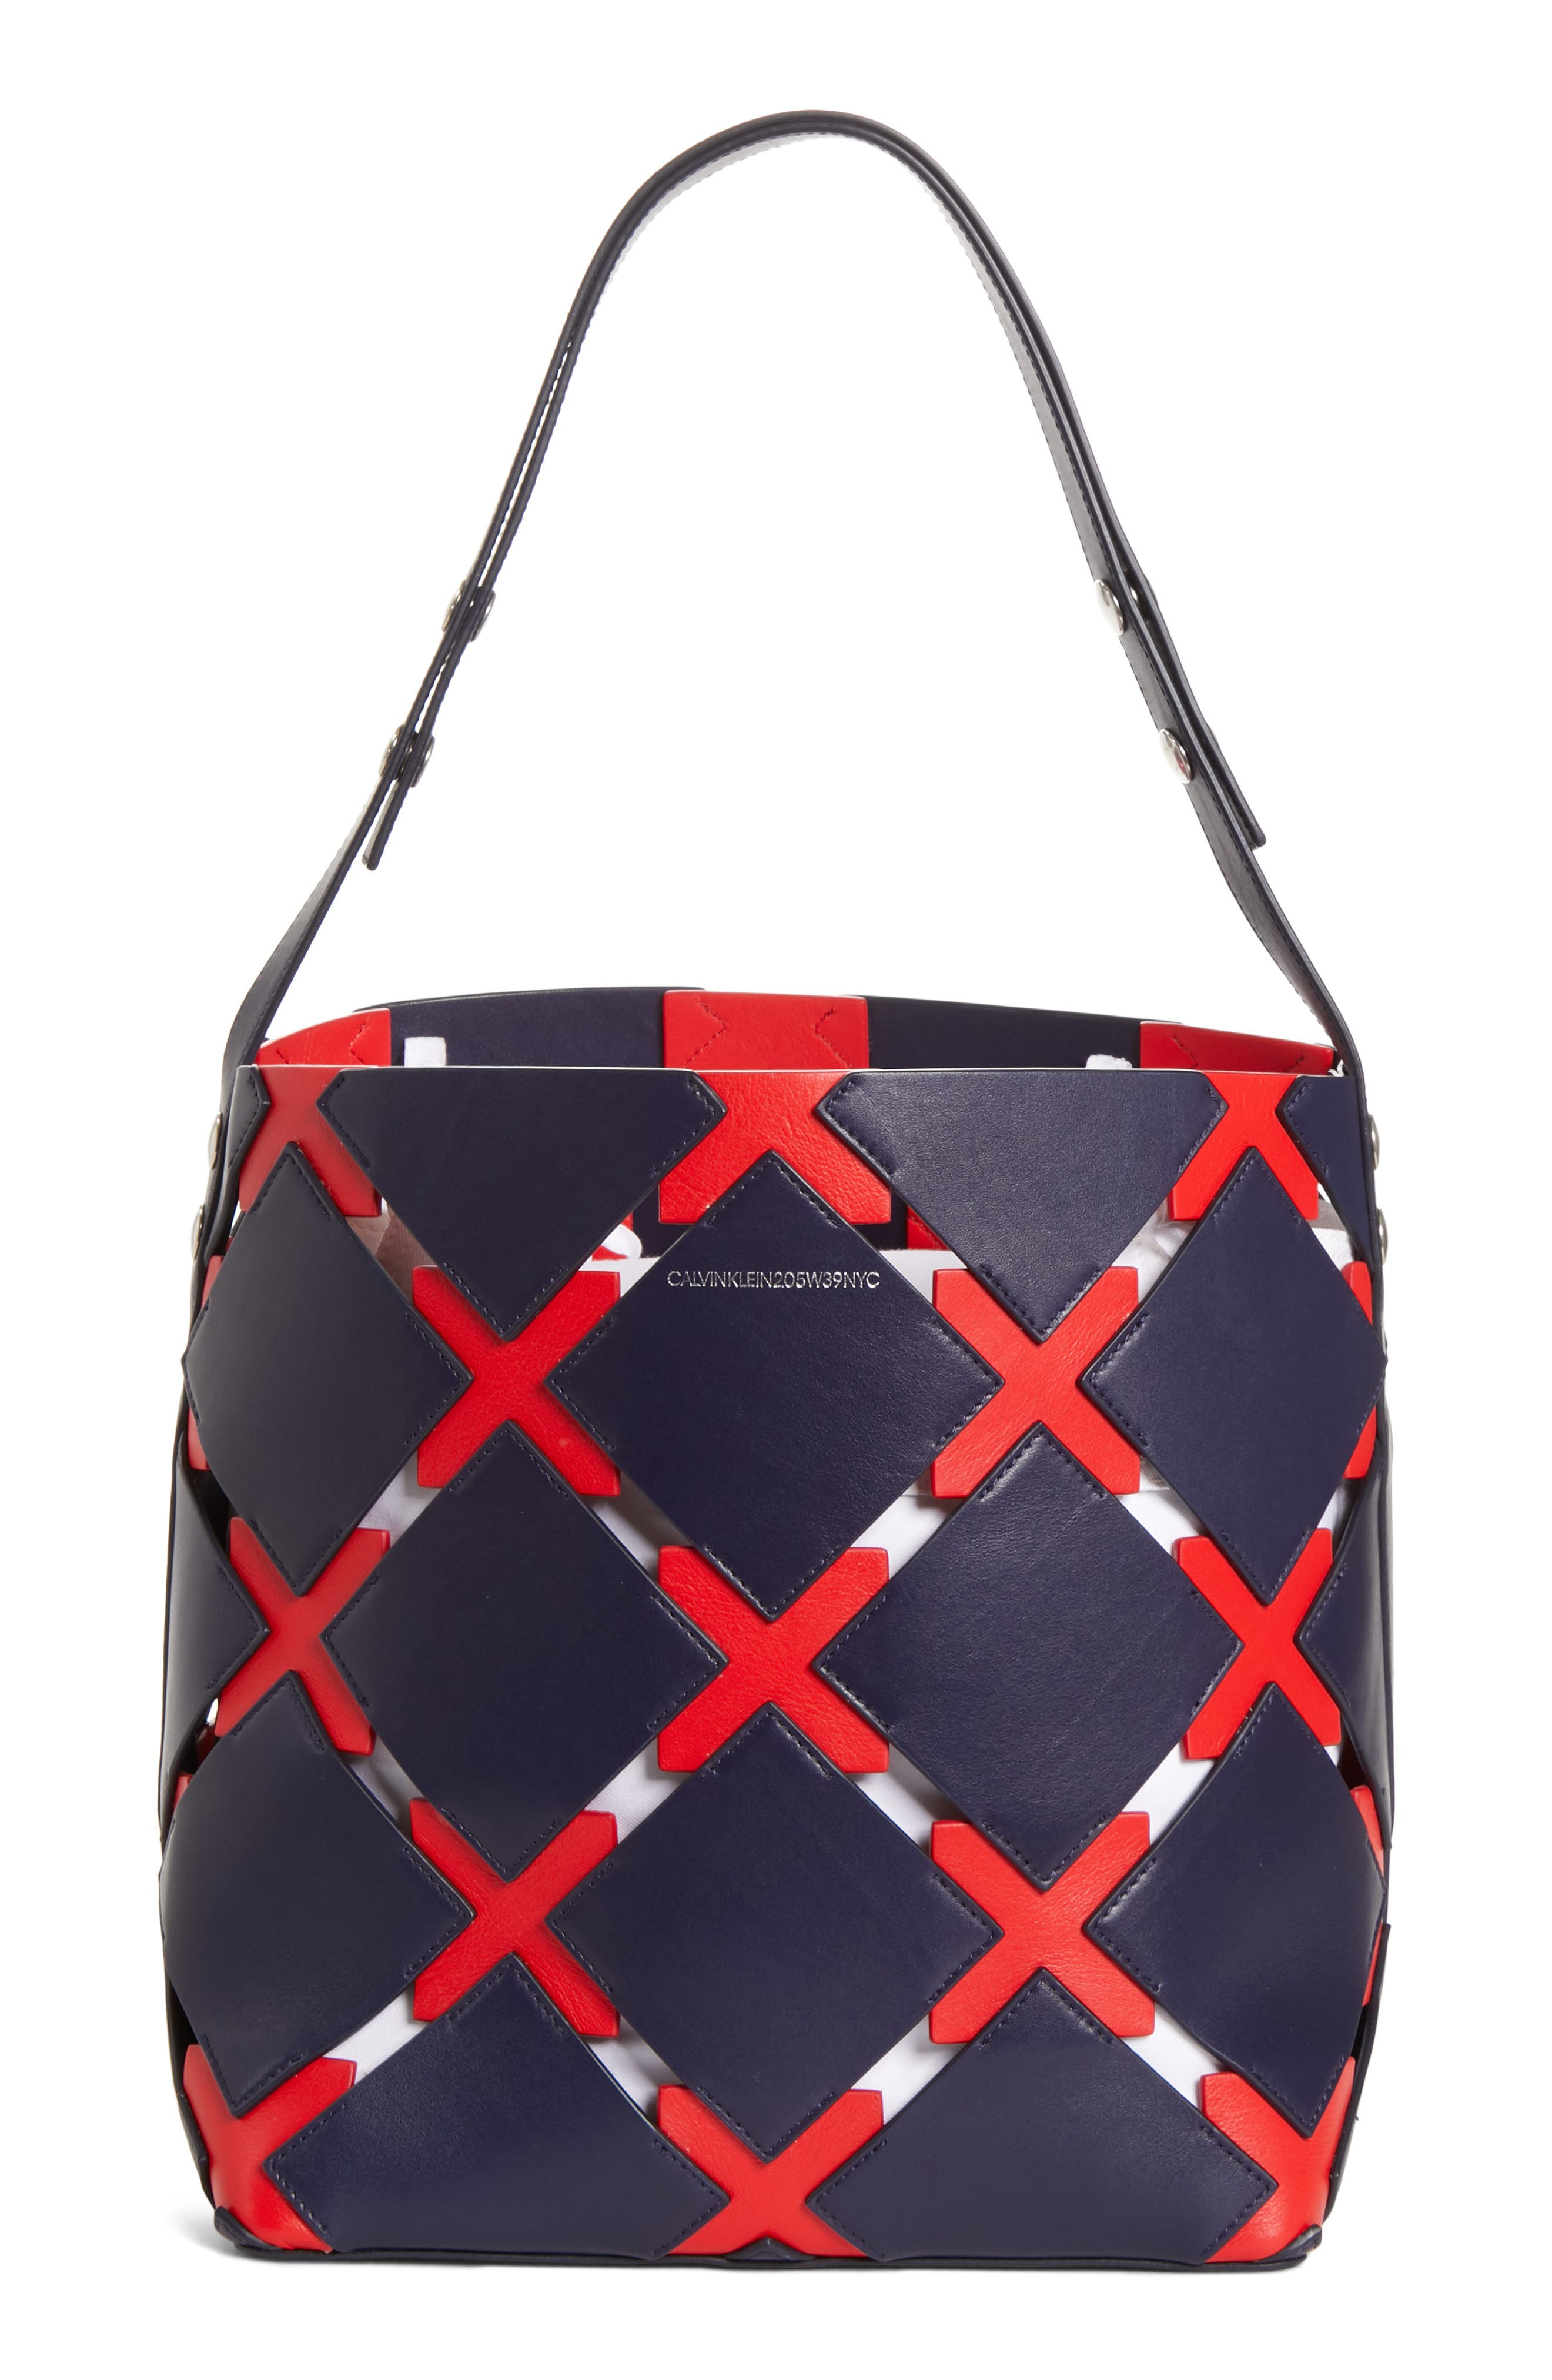 Patchwork Quilt Leather Bucket Bag,                             Main thumbnail 1, color,                             NAVY/ RED